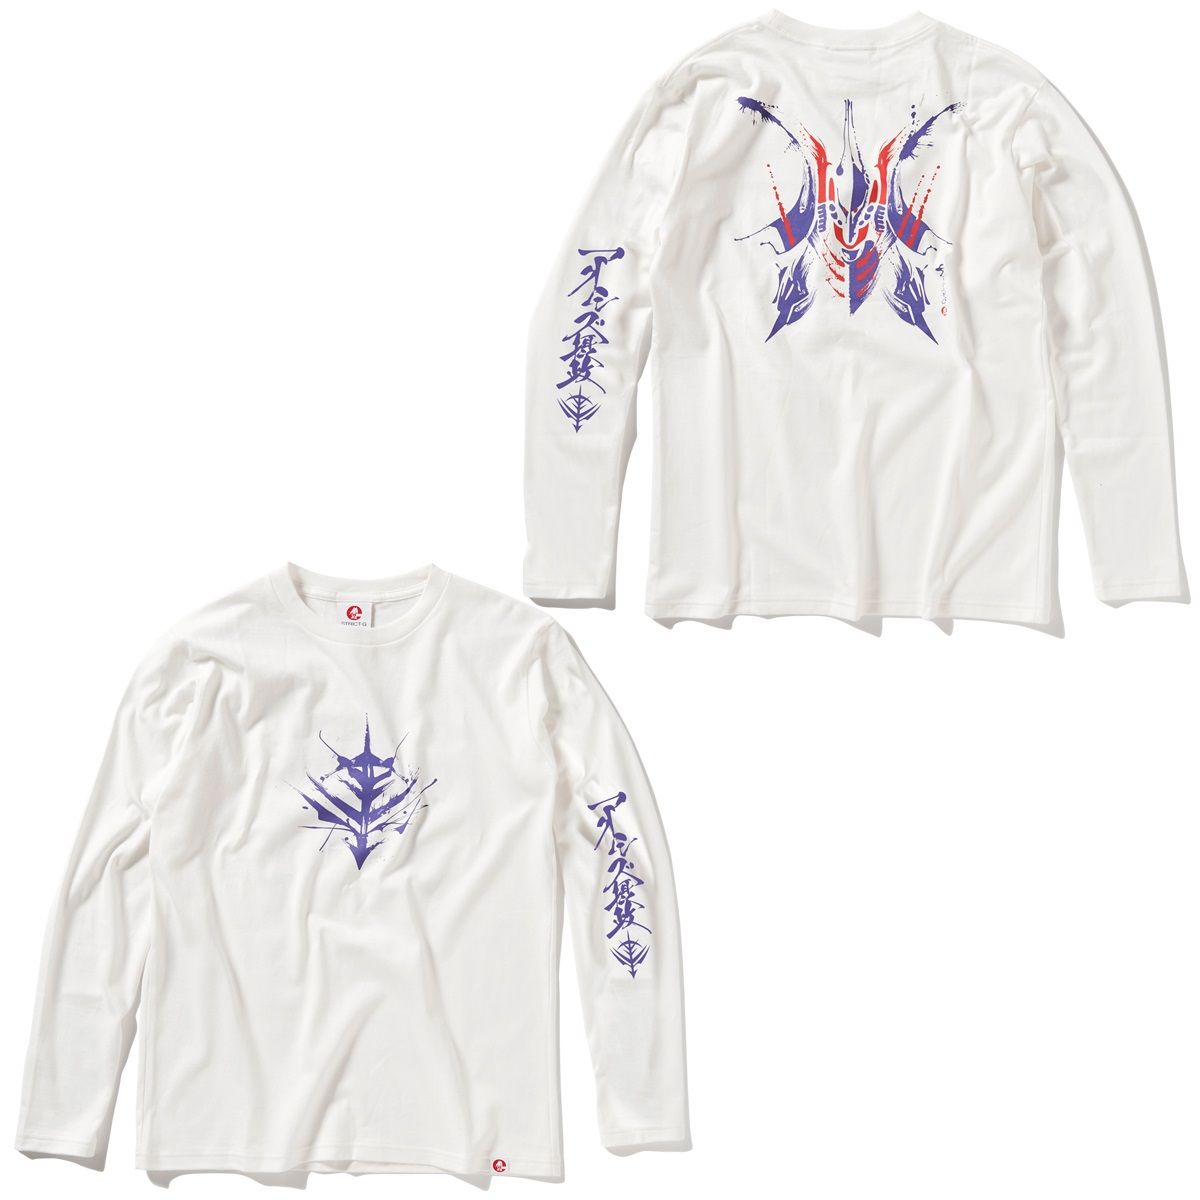 Qubeley Long-Sleeve T-shirt—Mobile Suit Gundam/STRICT-G JAPAN Collaboration